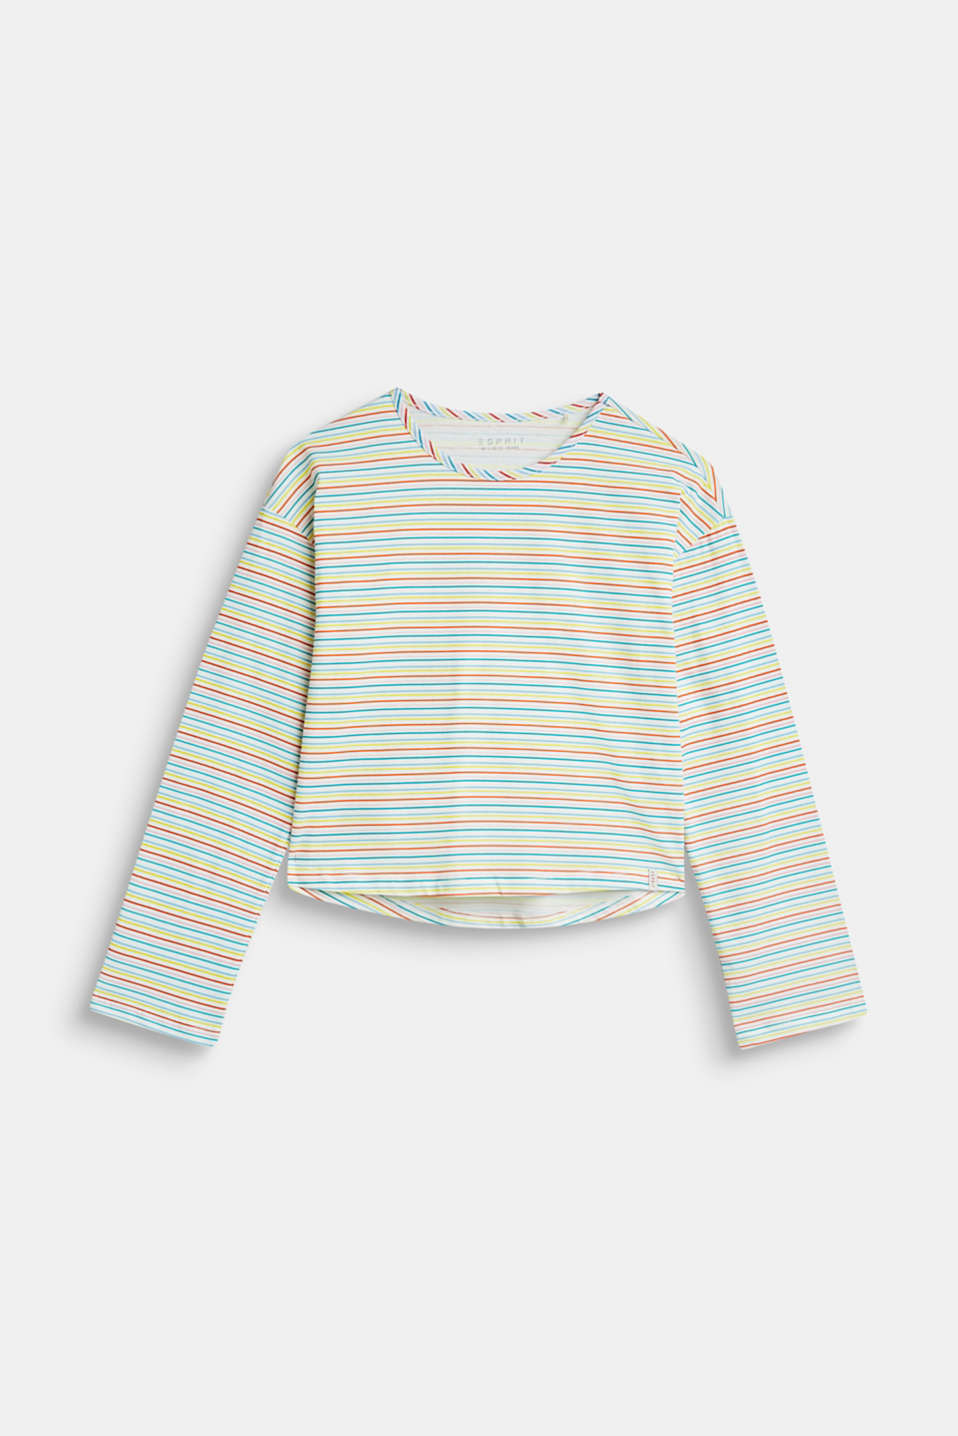 Esprit - Colourful striped long sleeve T-shirt, 100% cotton